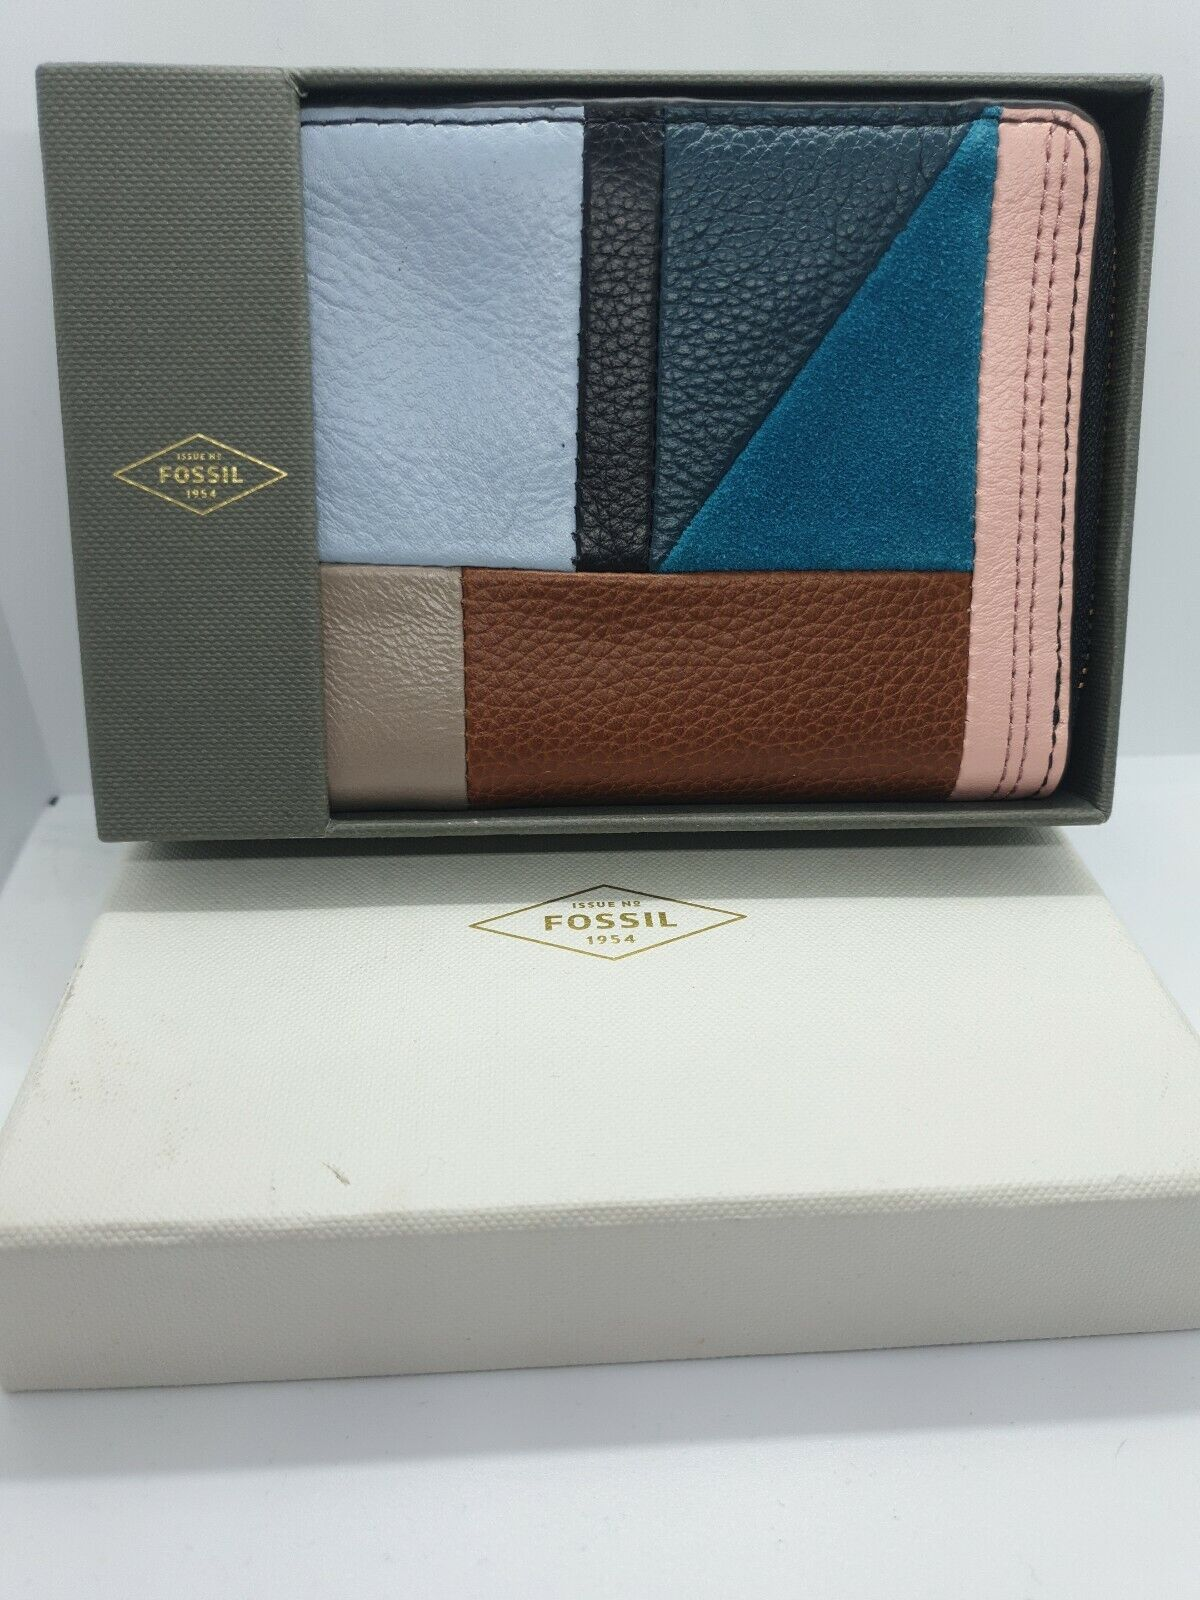 BRAND NEW IN BOX - Fossil Purse Patchwork / Leather RRP: (SL7764186)